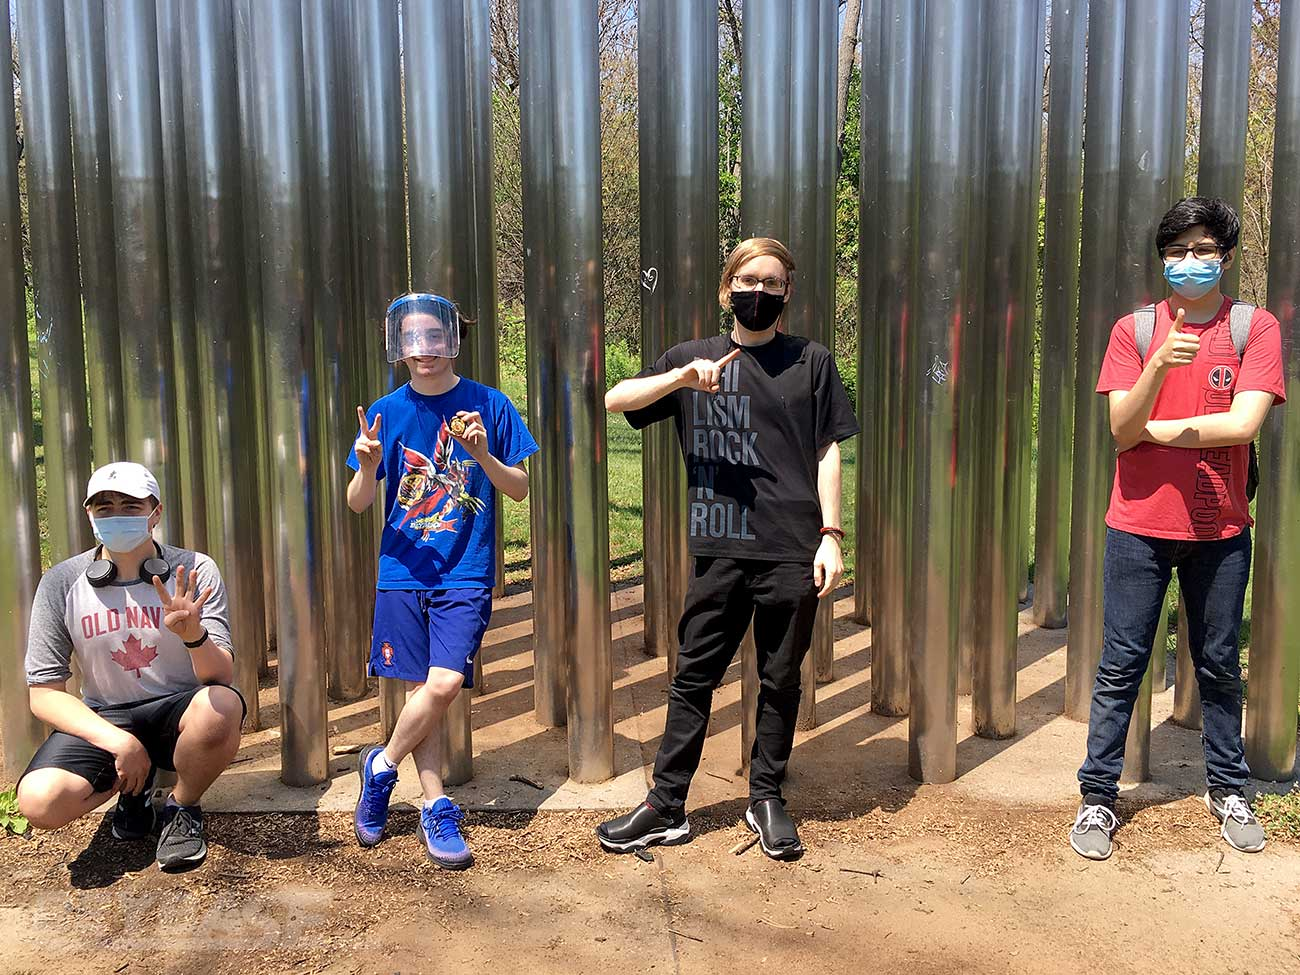 four people standing in front of outdoor art installation of tall metal poles